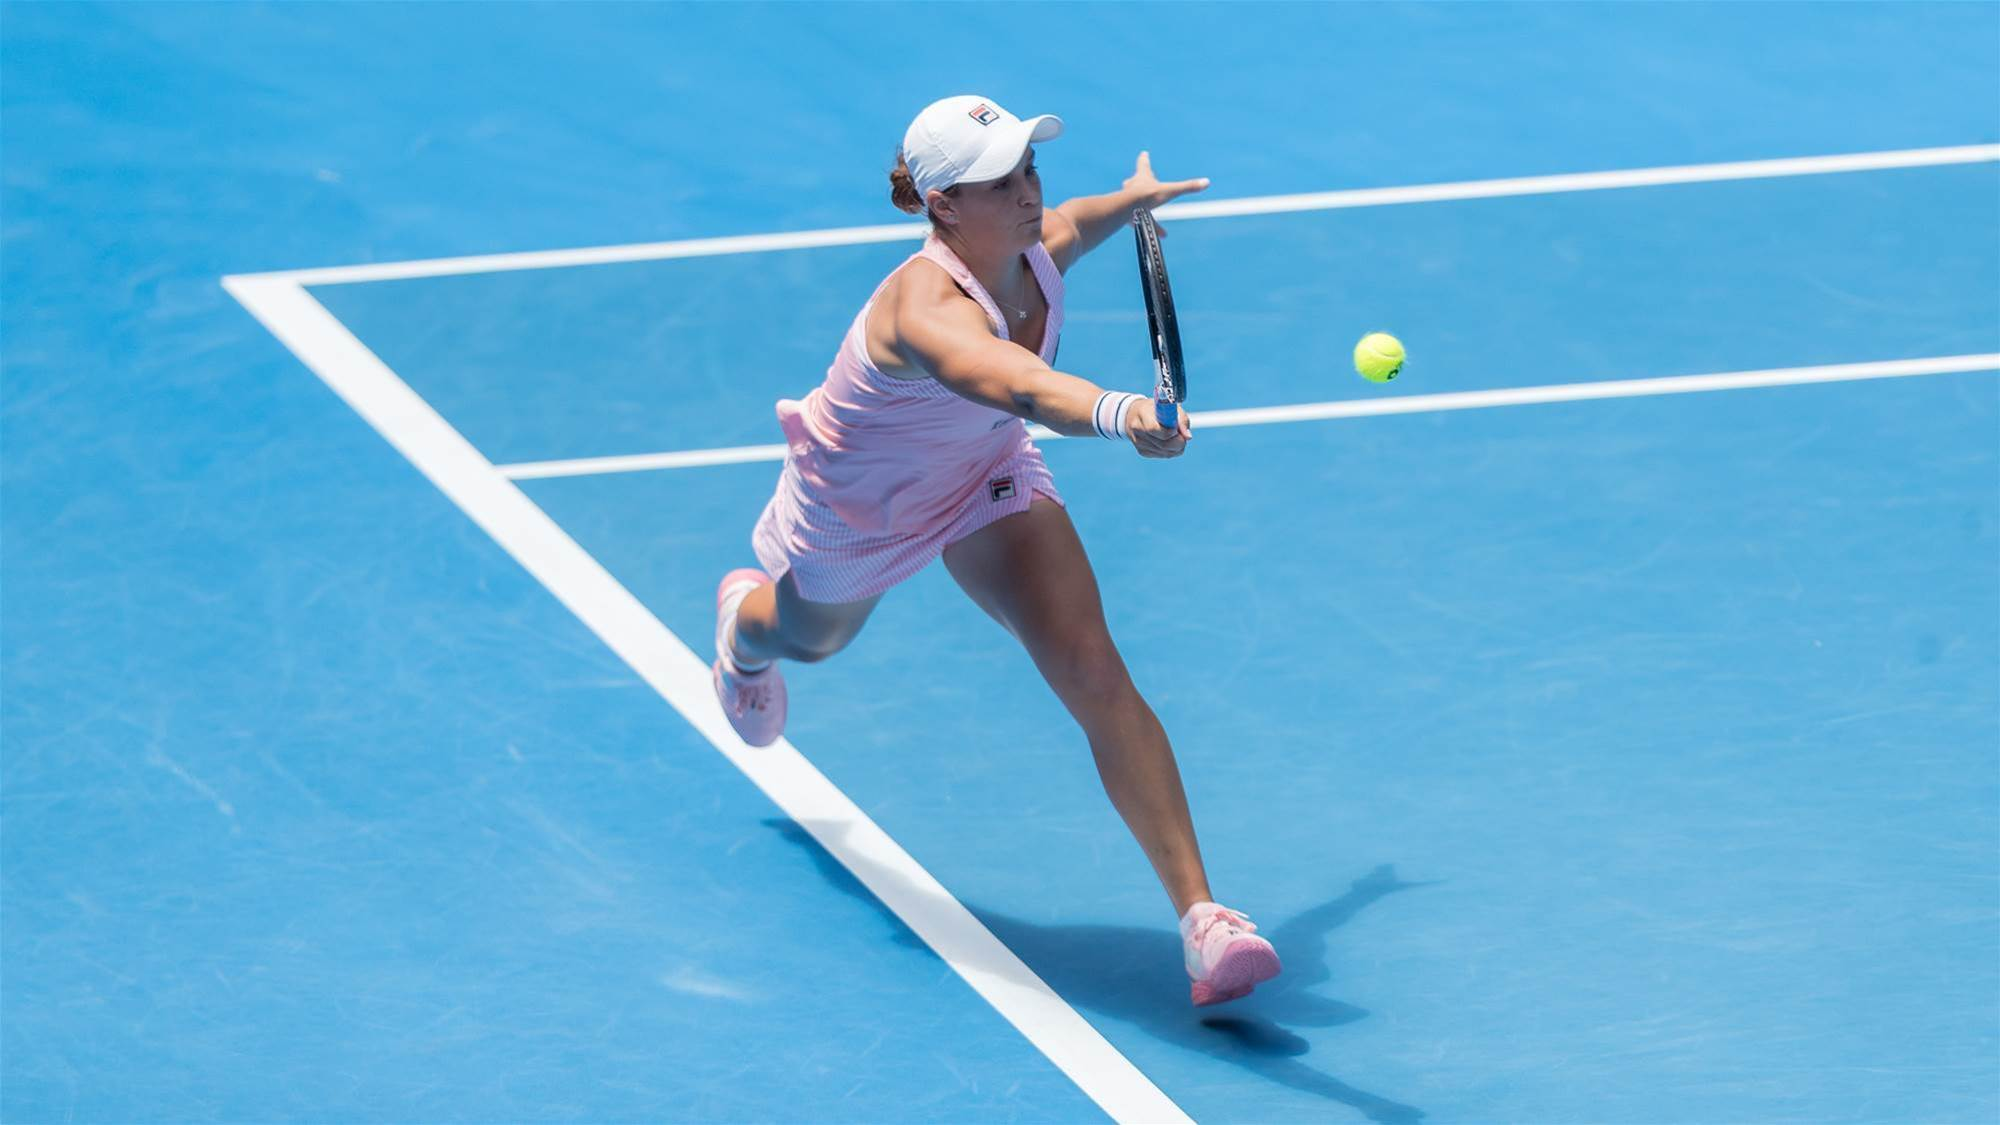 Quarter-finals drought broken by Barty